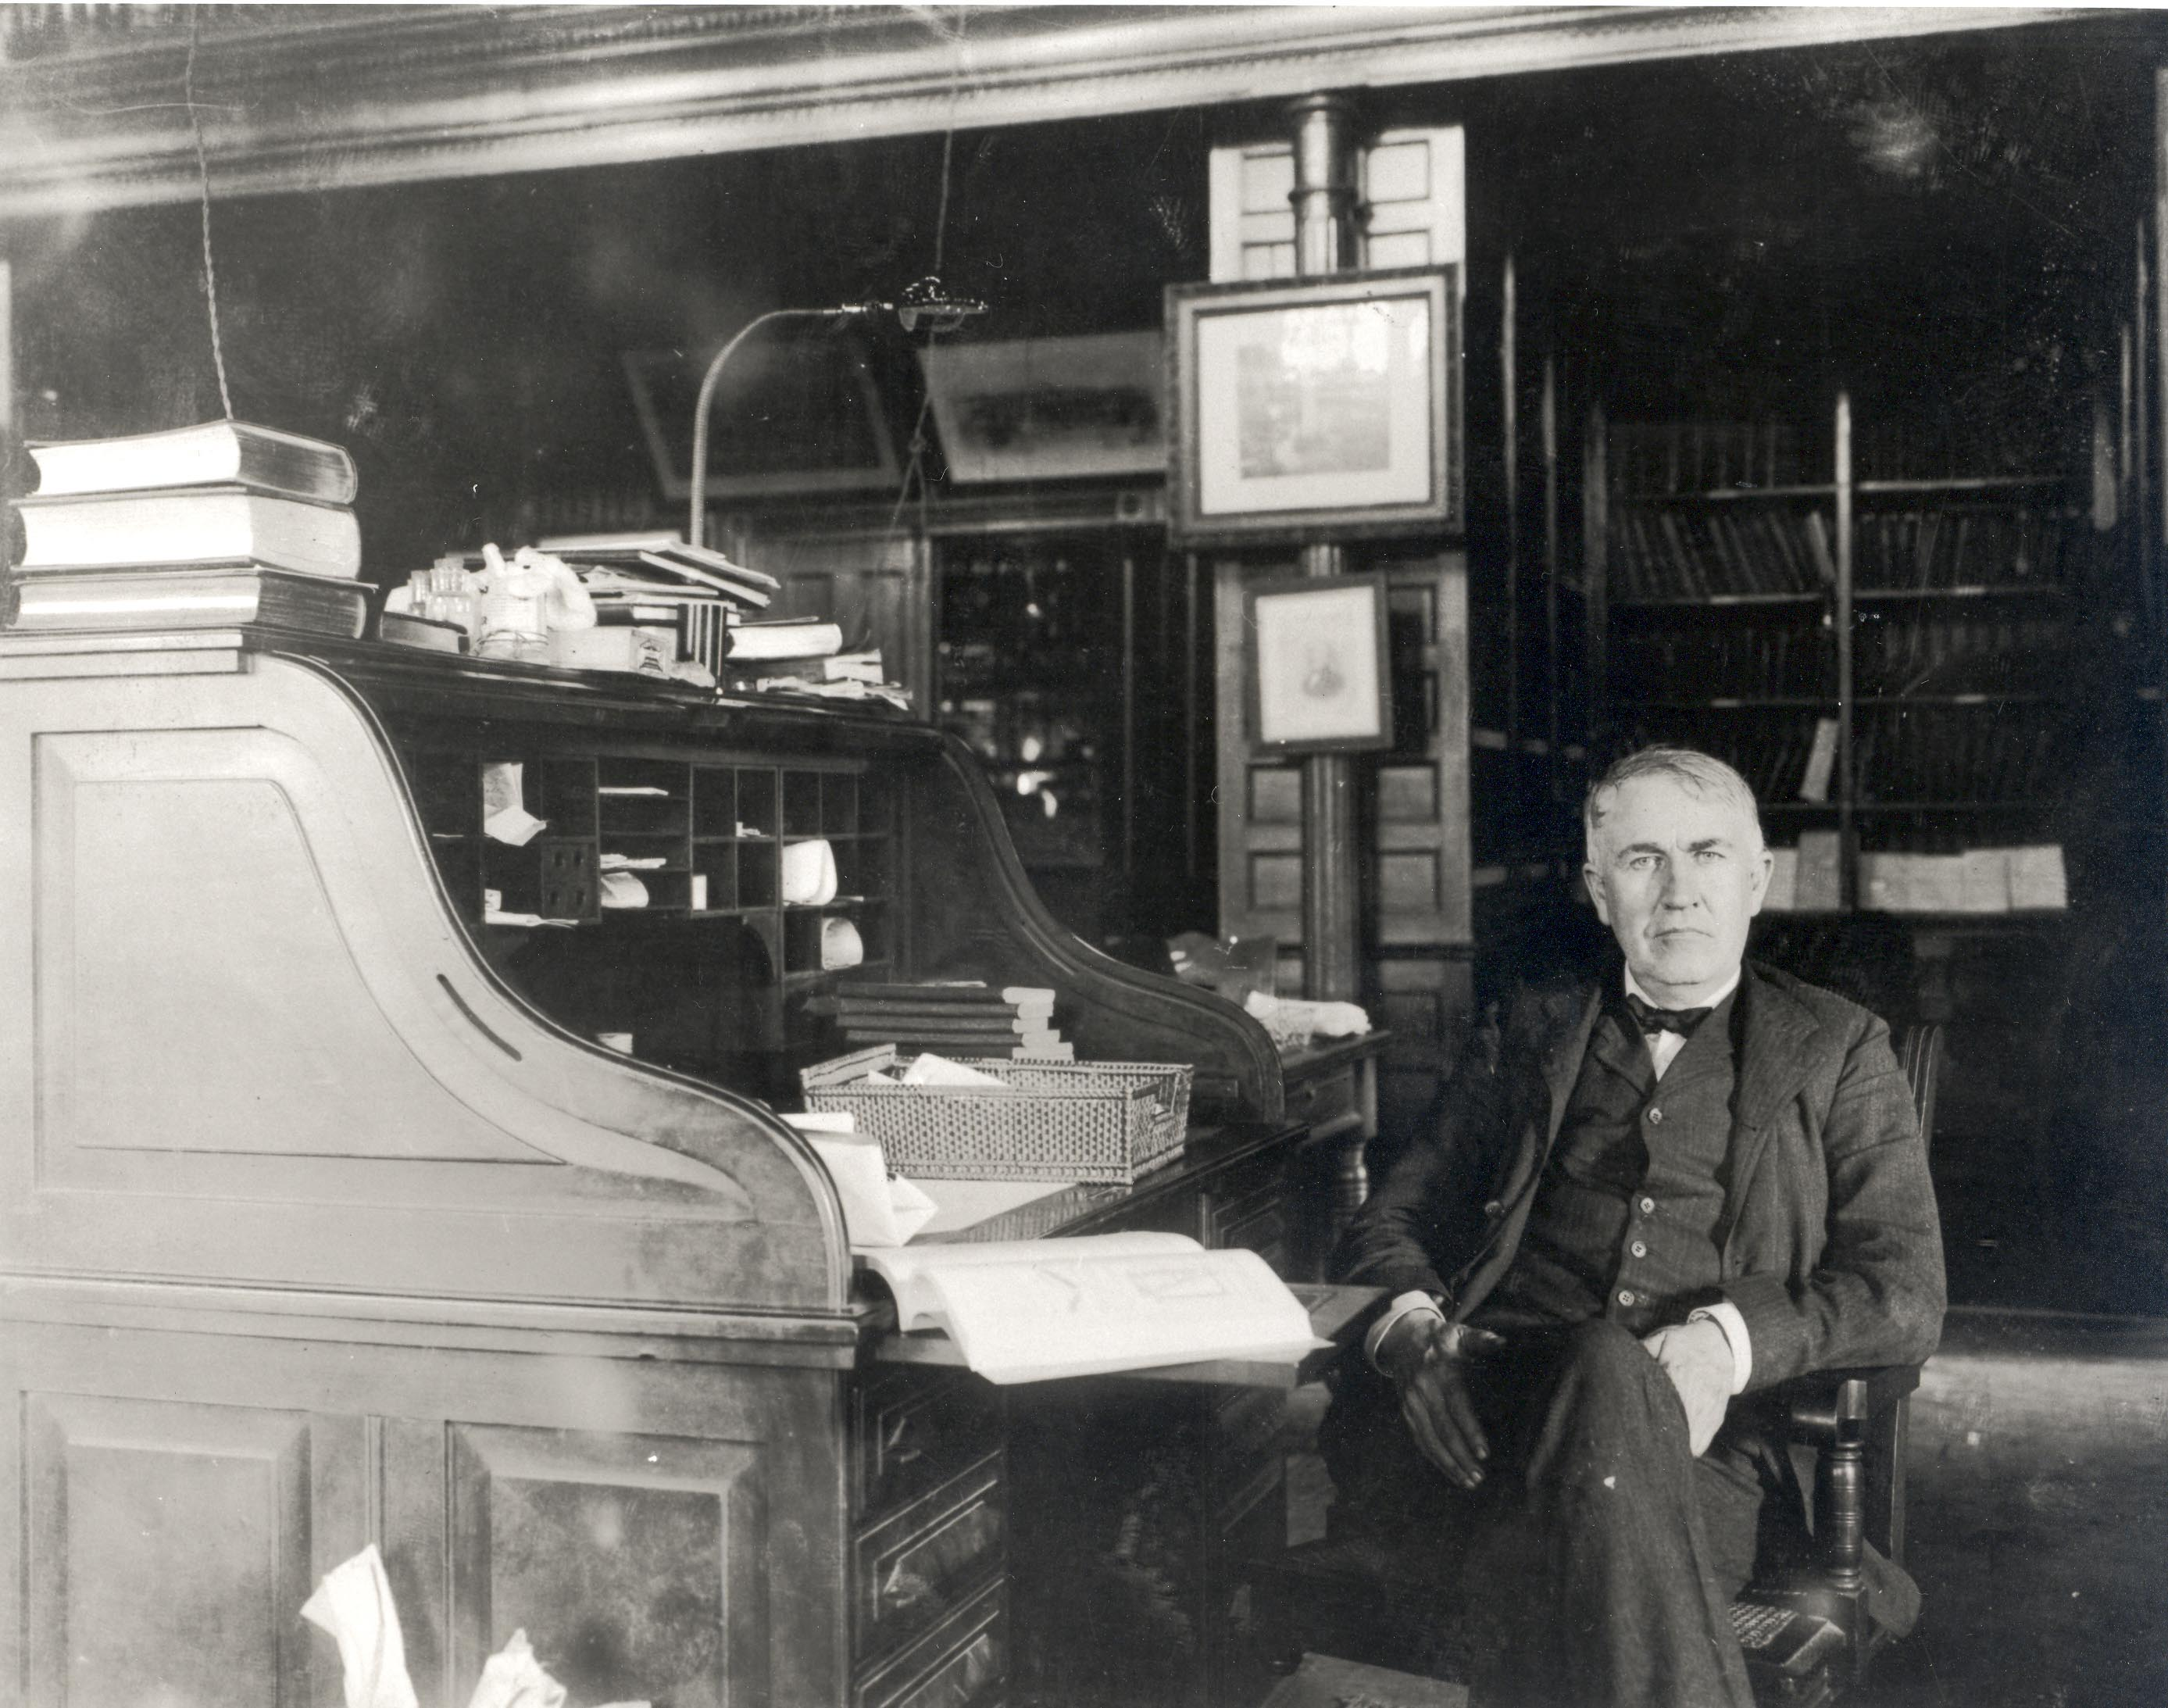 Edison at his office desk-always studying new things.